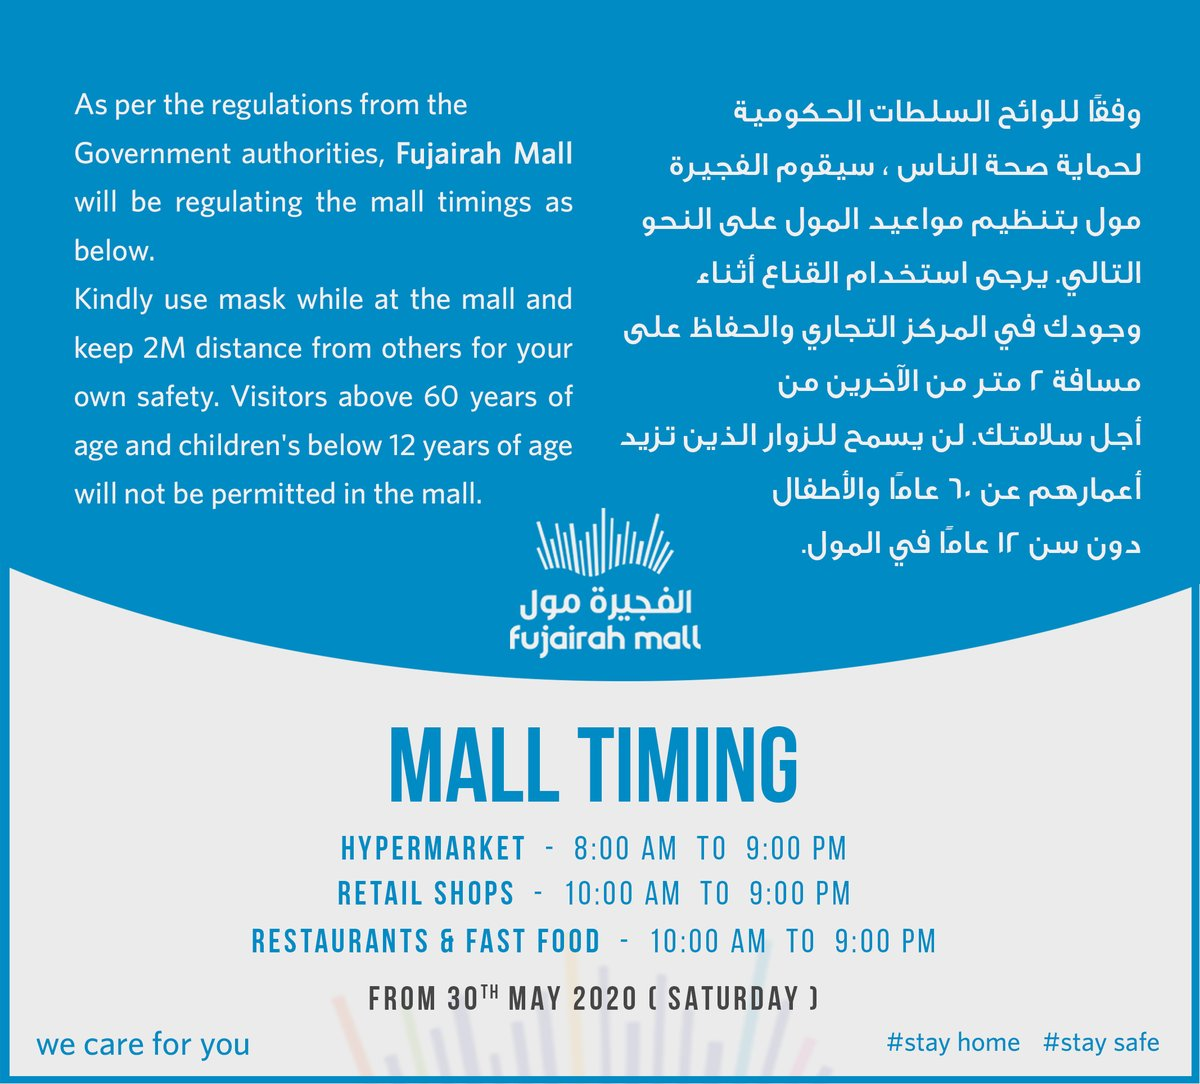 New Mall Timing https://t.co/5P3sjq3MGq